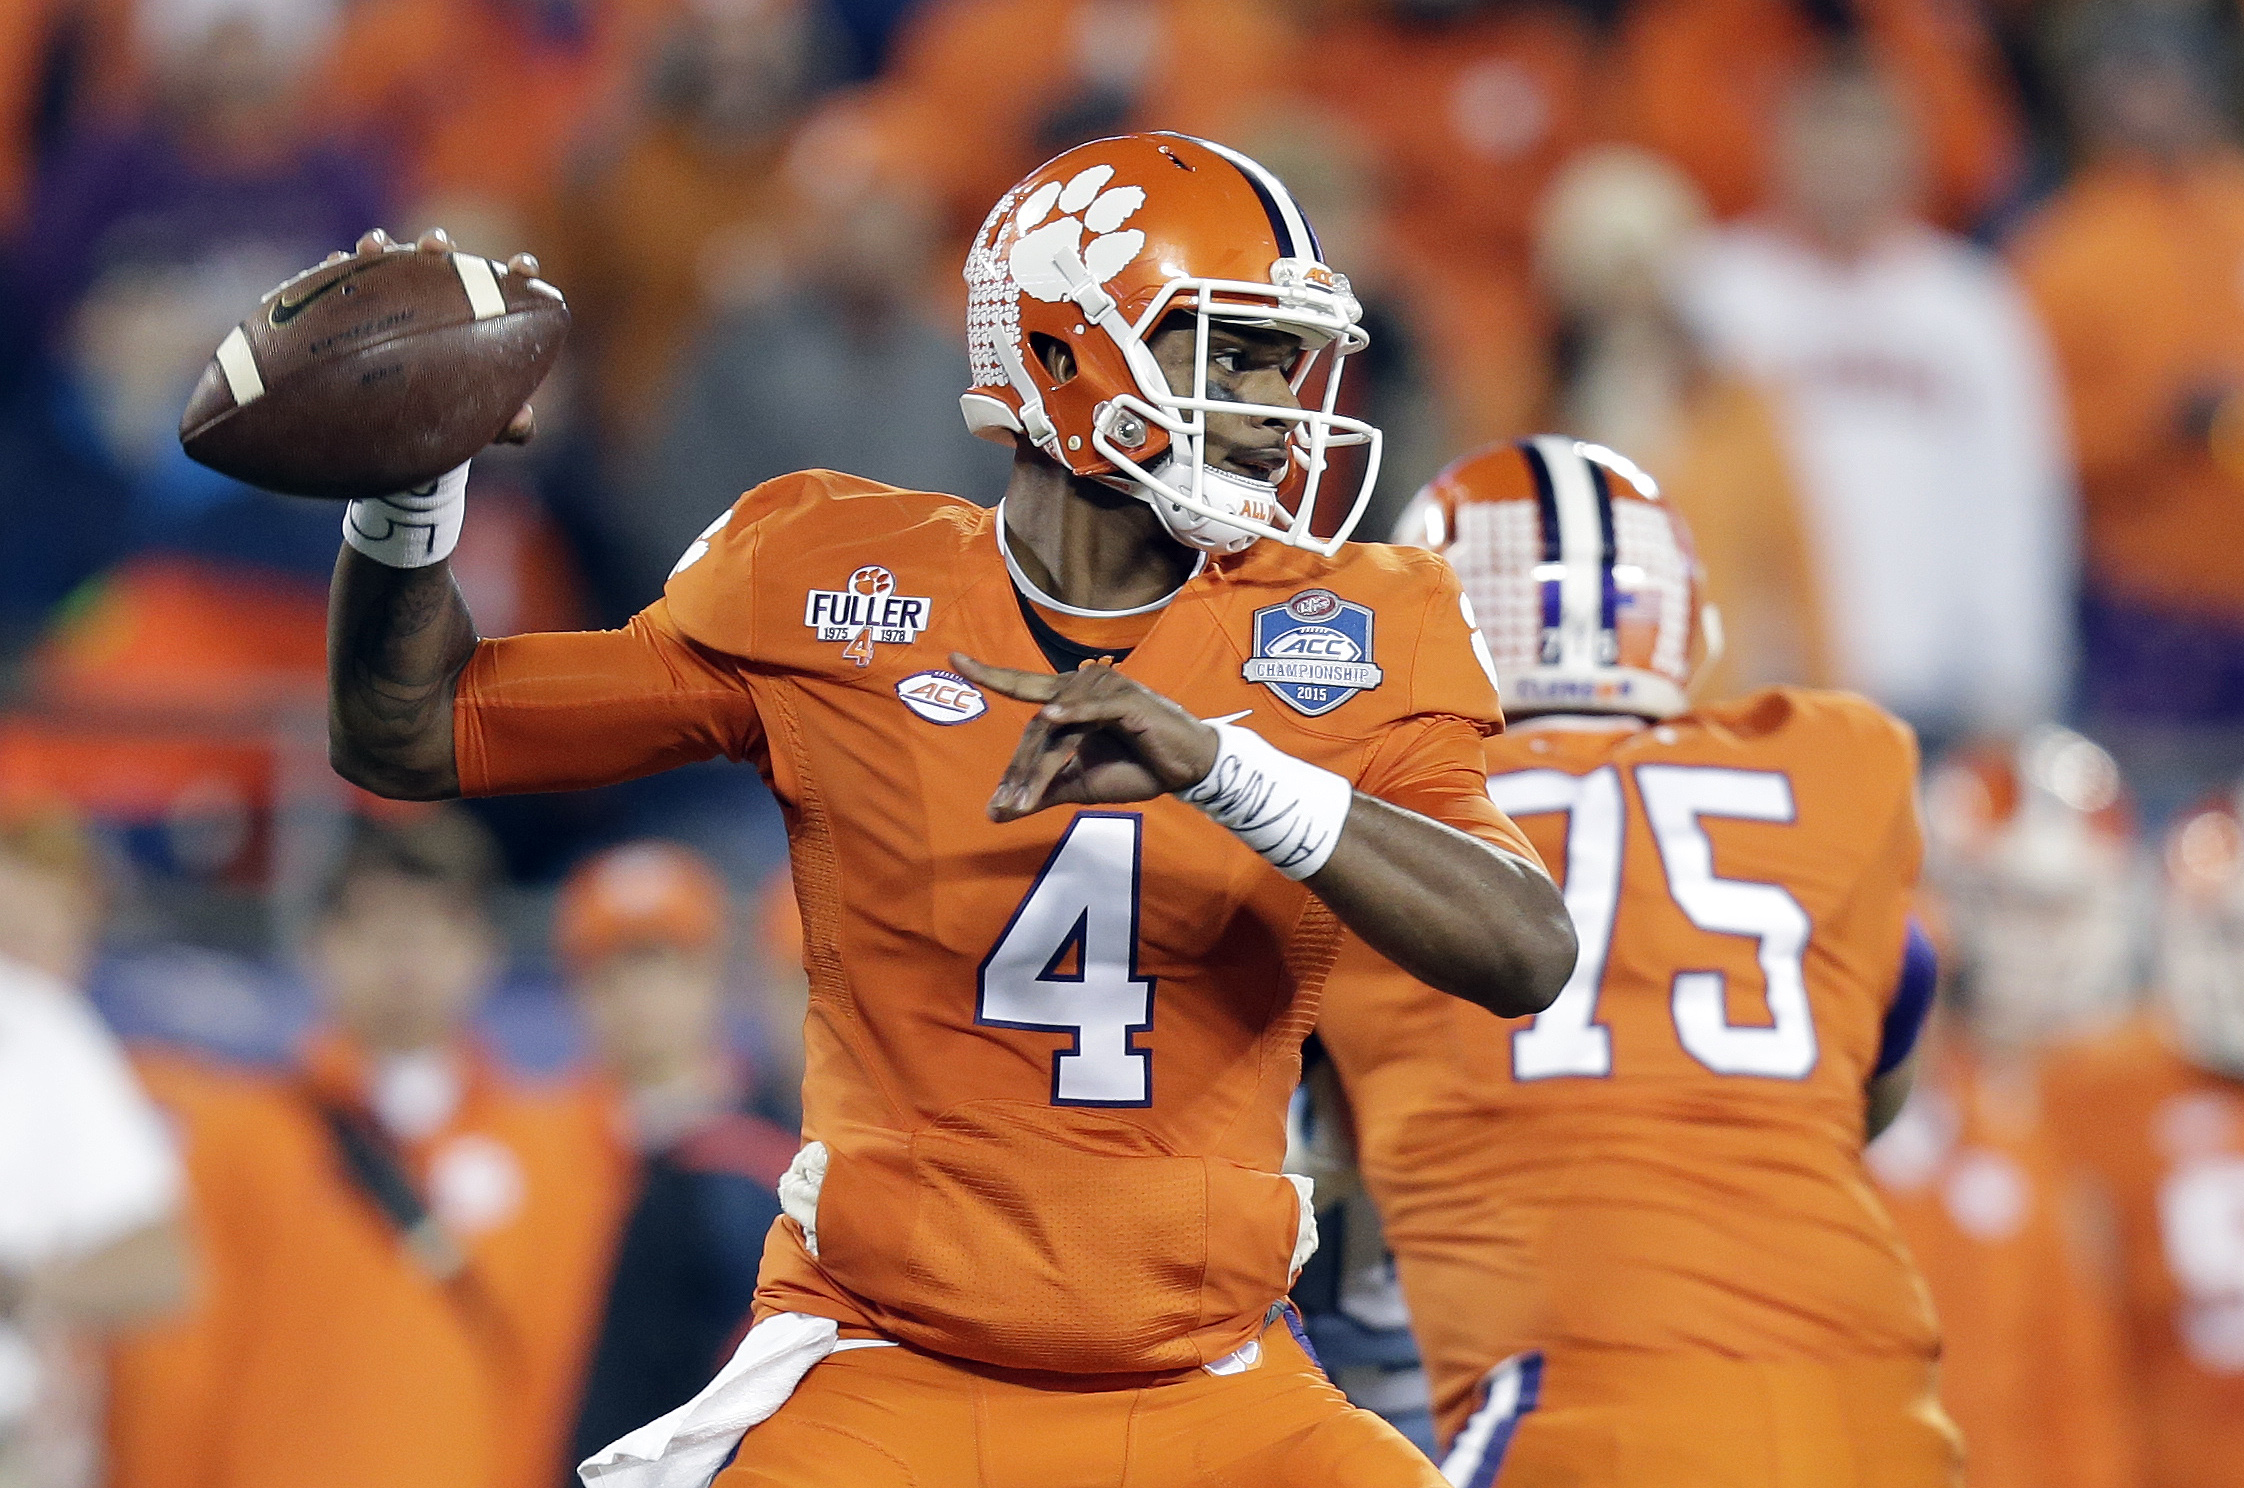 FILE - In this Dec. 5, 2015 file photo, Clemson quarterback Deshaun Watson looks to pass against North Carolina during the first half of the Atlantic Coast Conference championship NCAA college football game in Charlotte, N.C. Watson is the face of No. 1 C